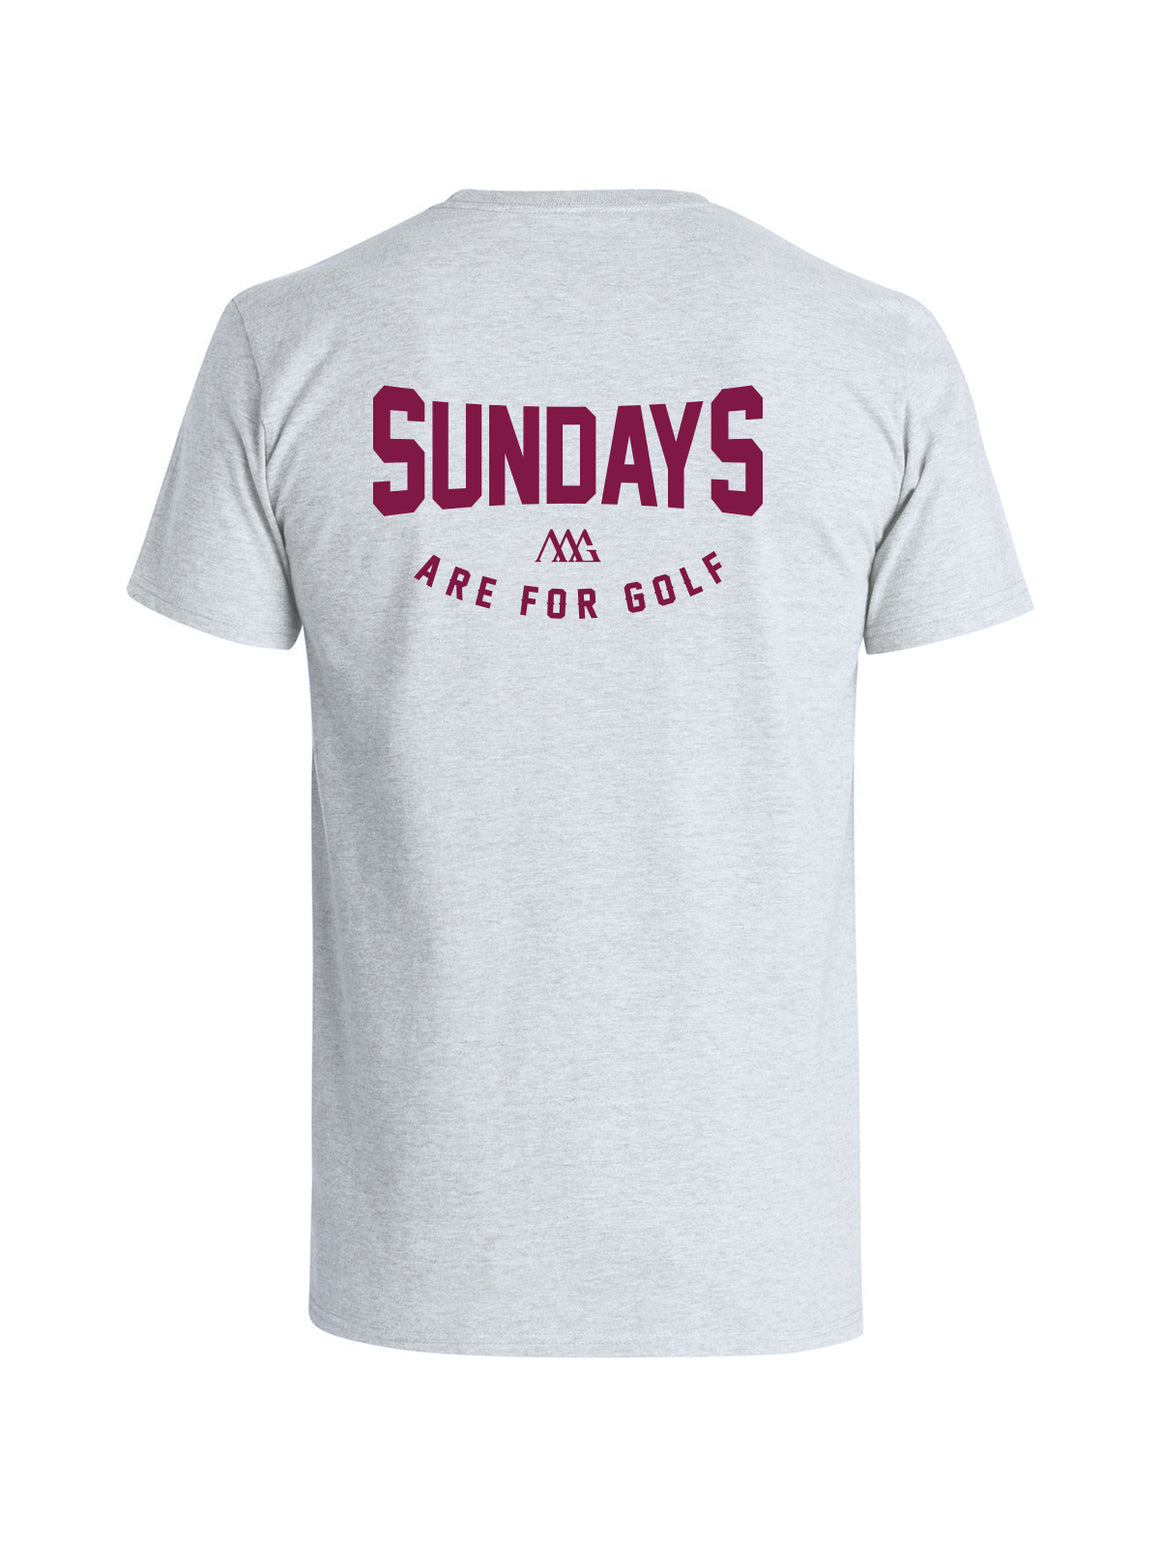 Sundays Golf Tee Shirt - Feather Grey (Pinot)